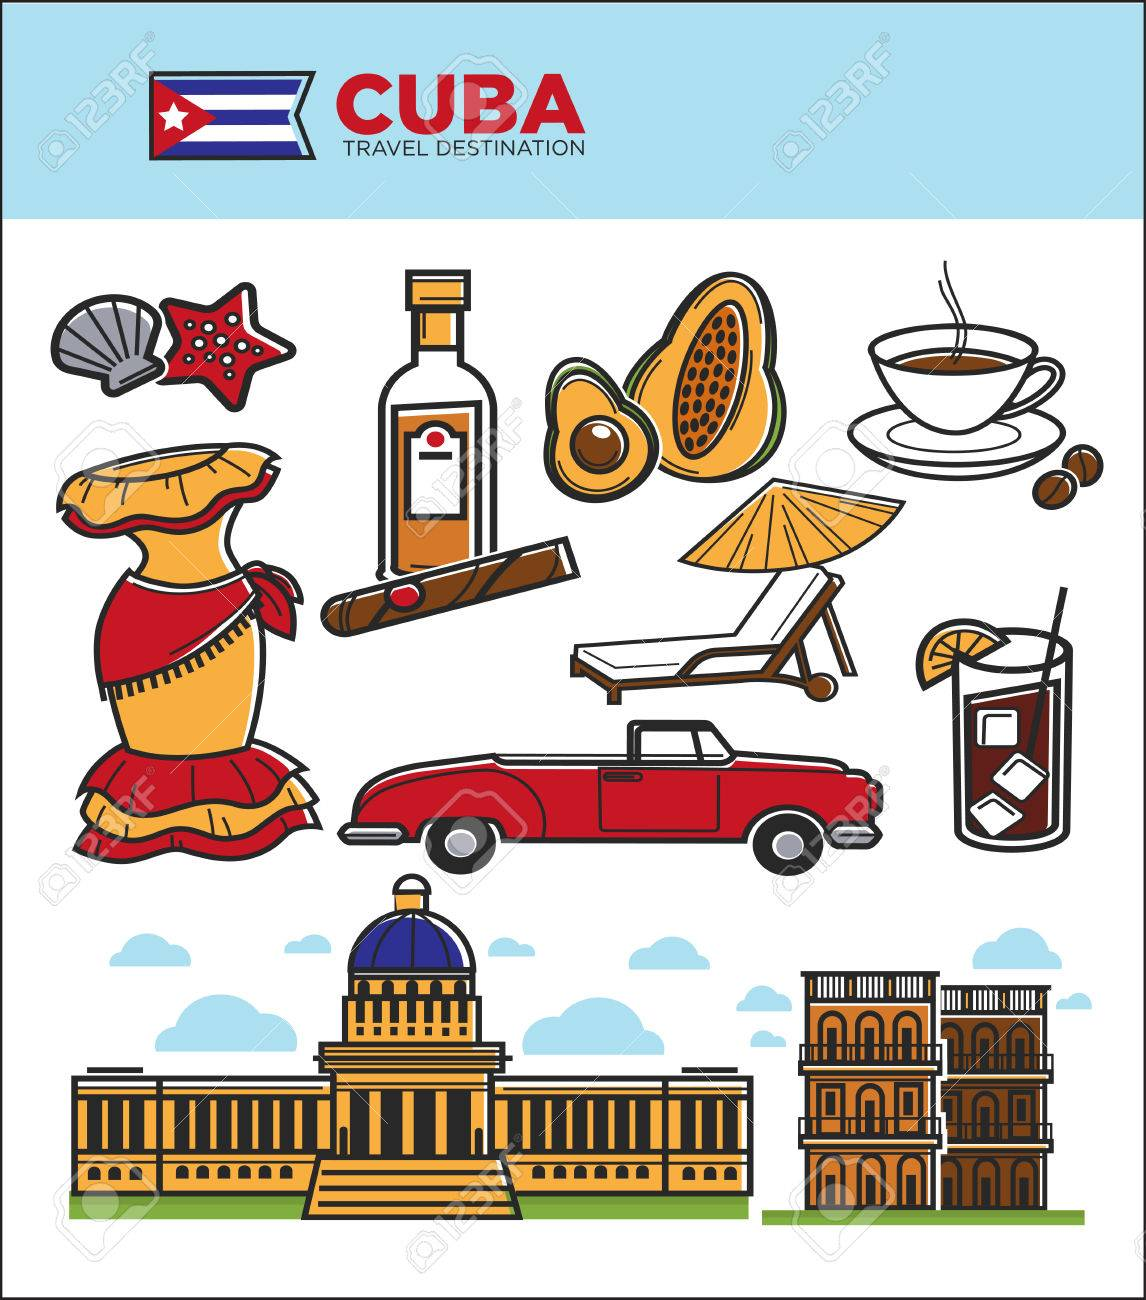 Cuba Tourism Travel Symbols And Culture Famous Sightseeing Icons